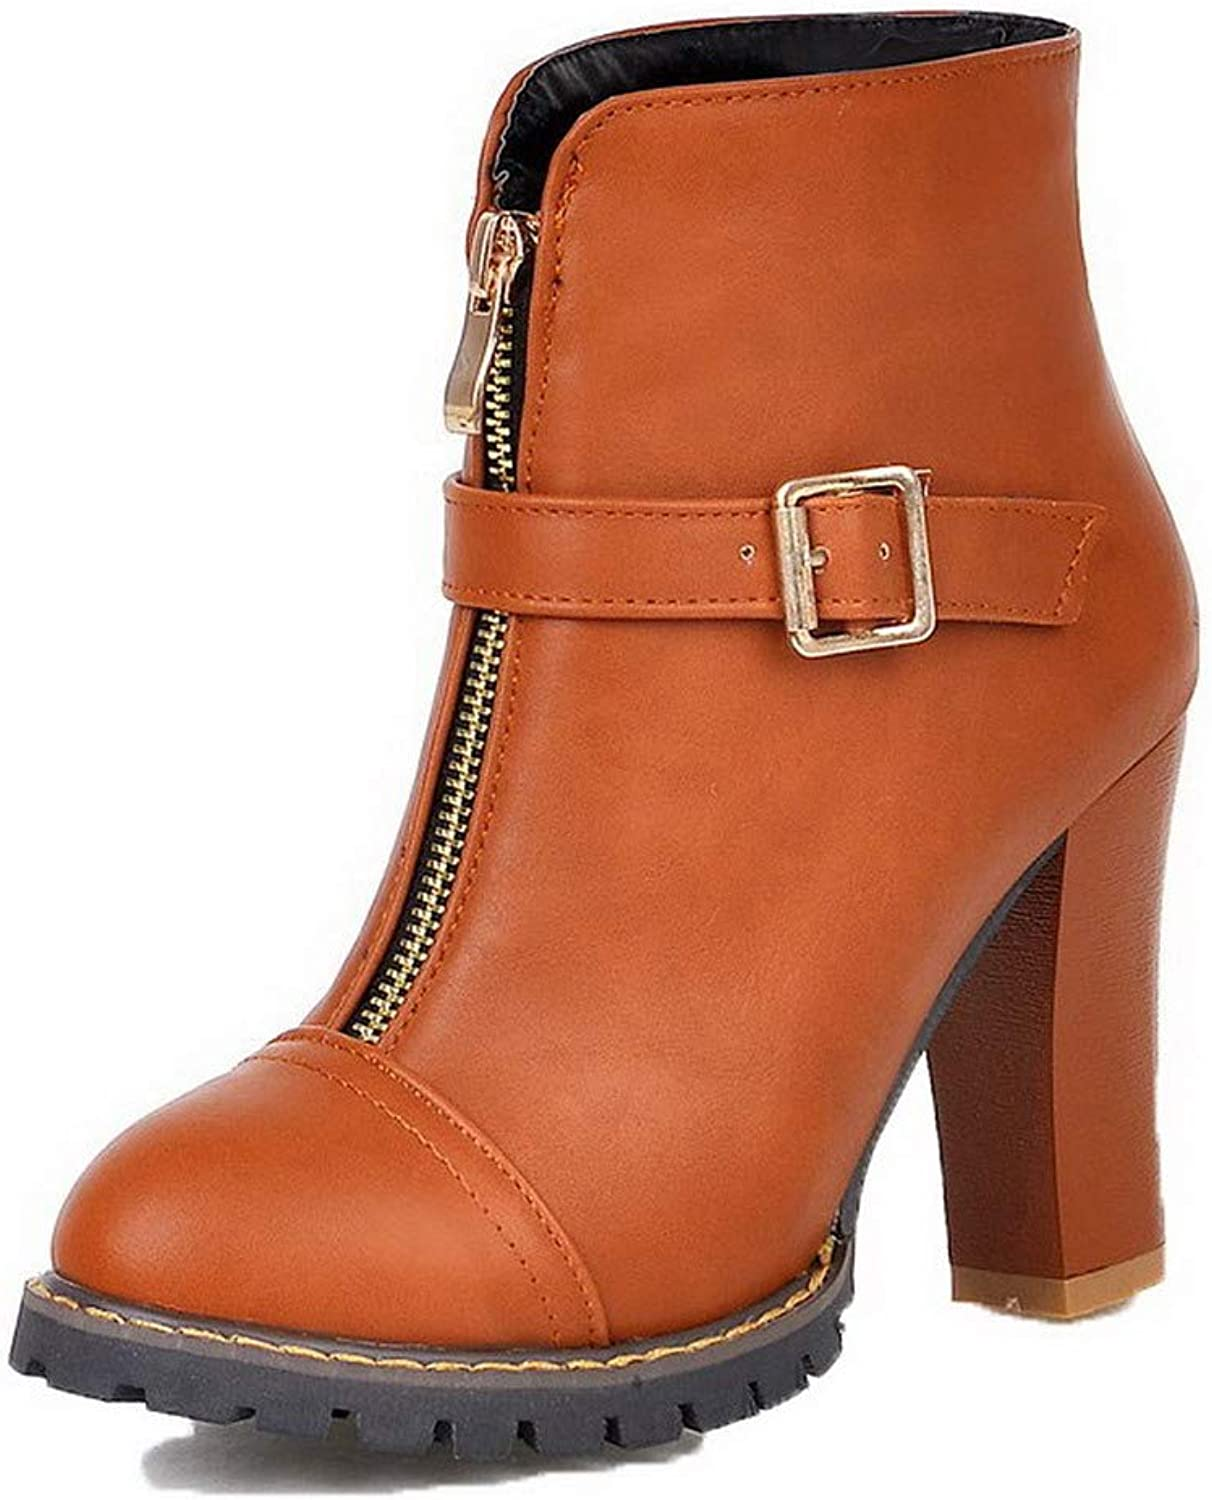 AllhqFashion Women's Pu Low-Top Solid Zipper High-Heels Boots, FBUXD124660